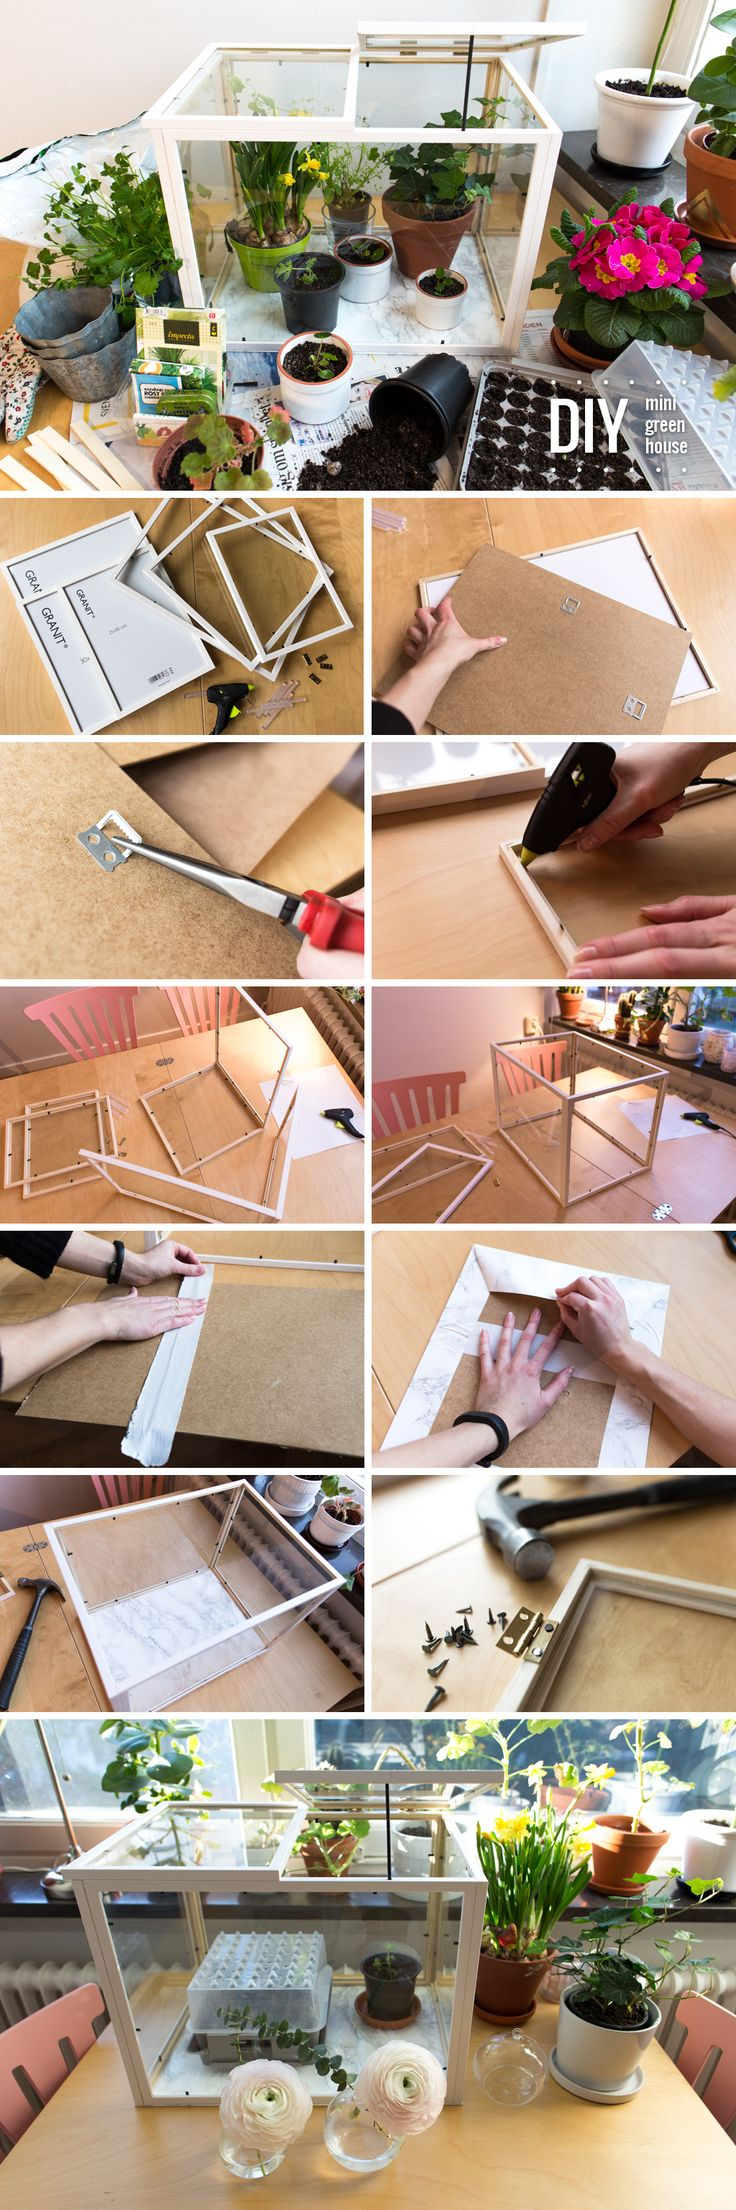 DIY – Mini green house out of picture frames by Anna María